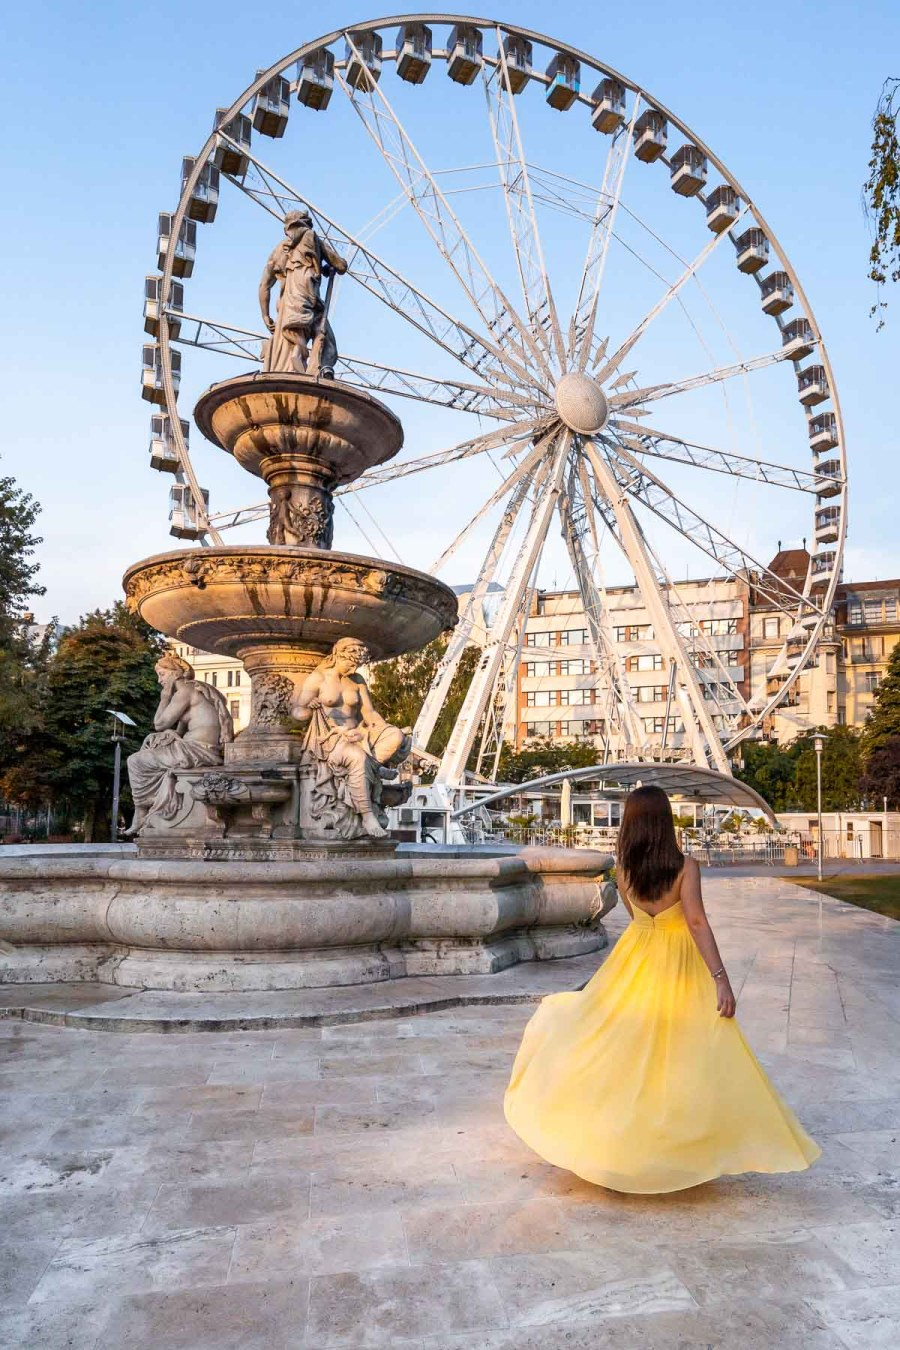 Girl in a yellow dress twirling in front of the Budapest Eye